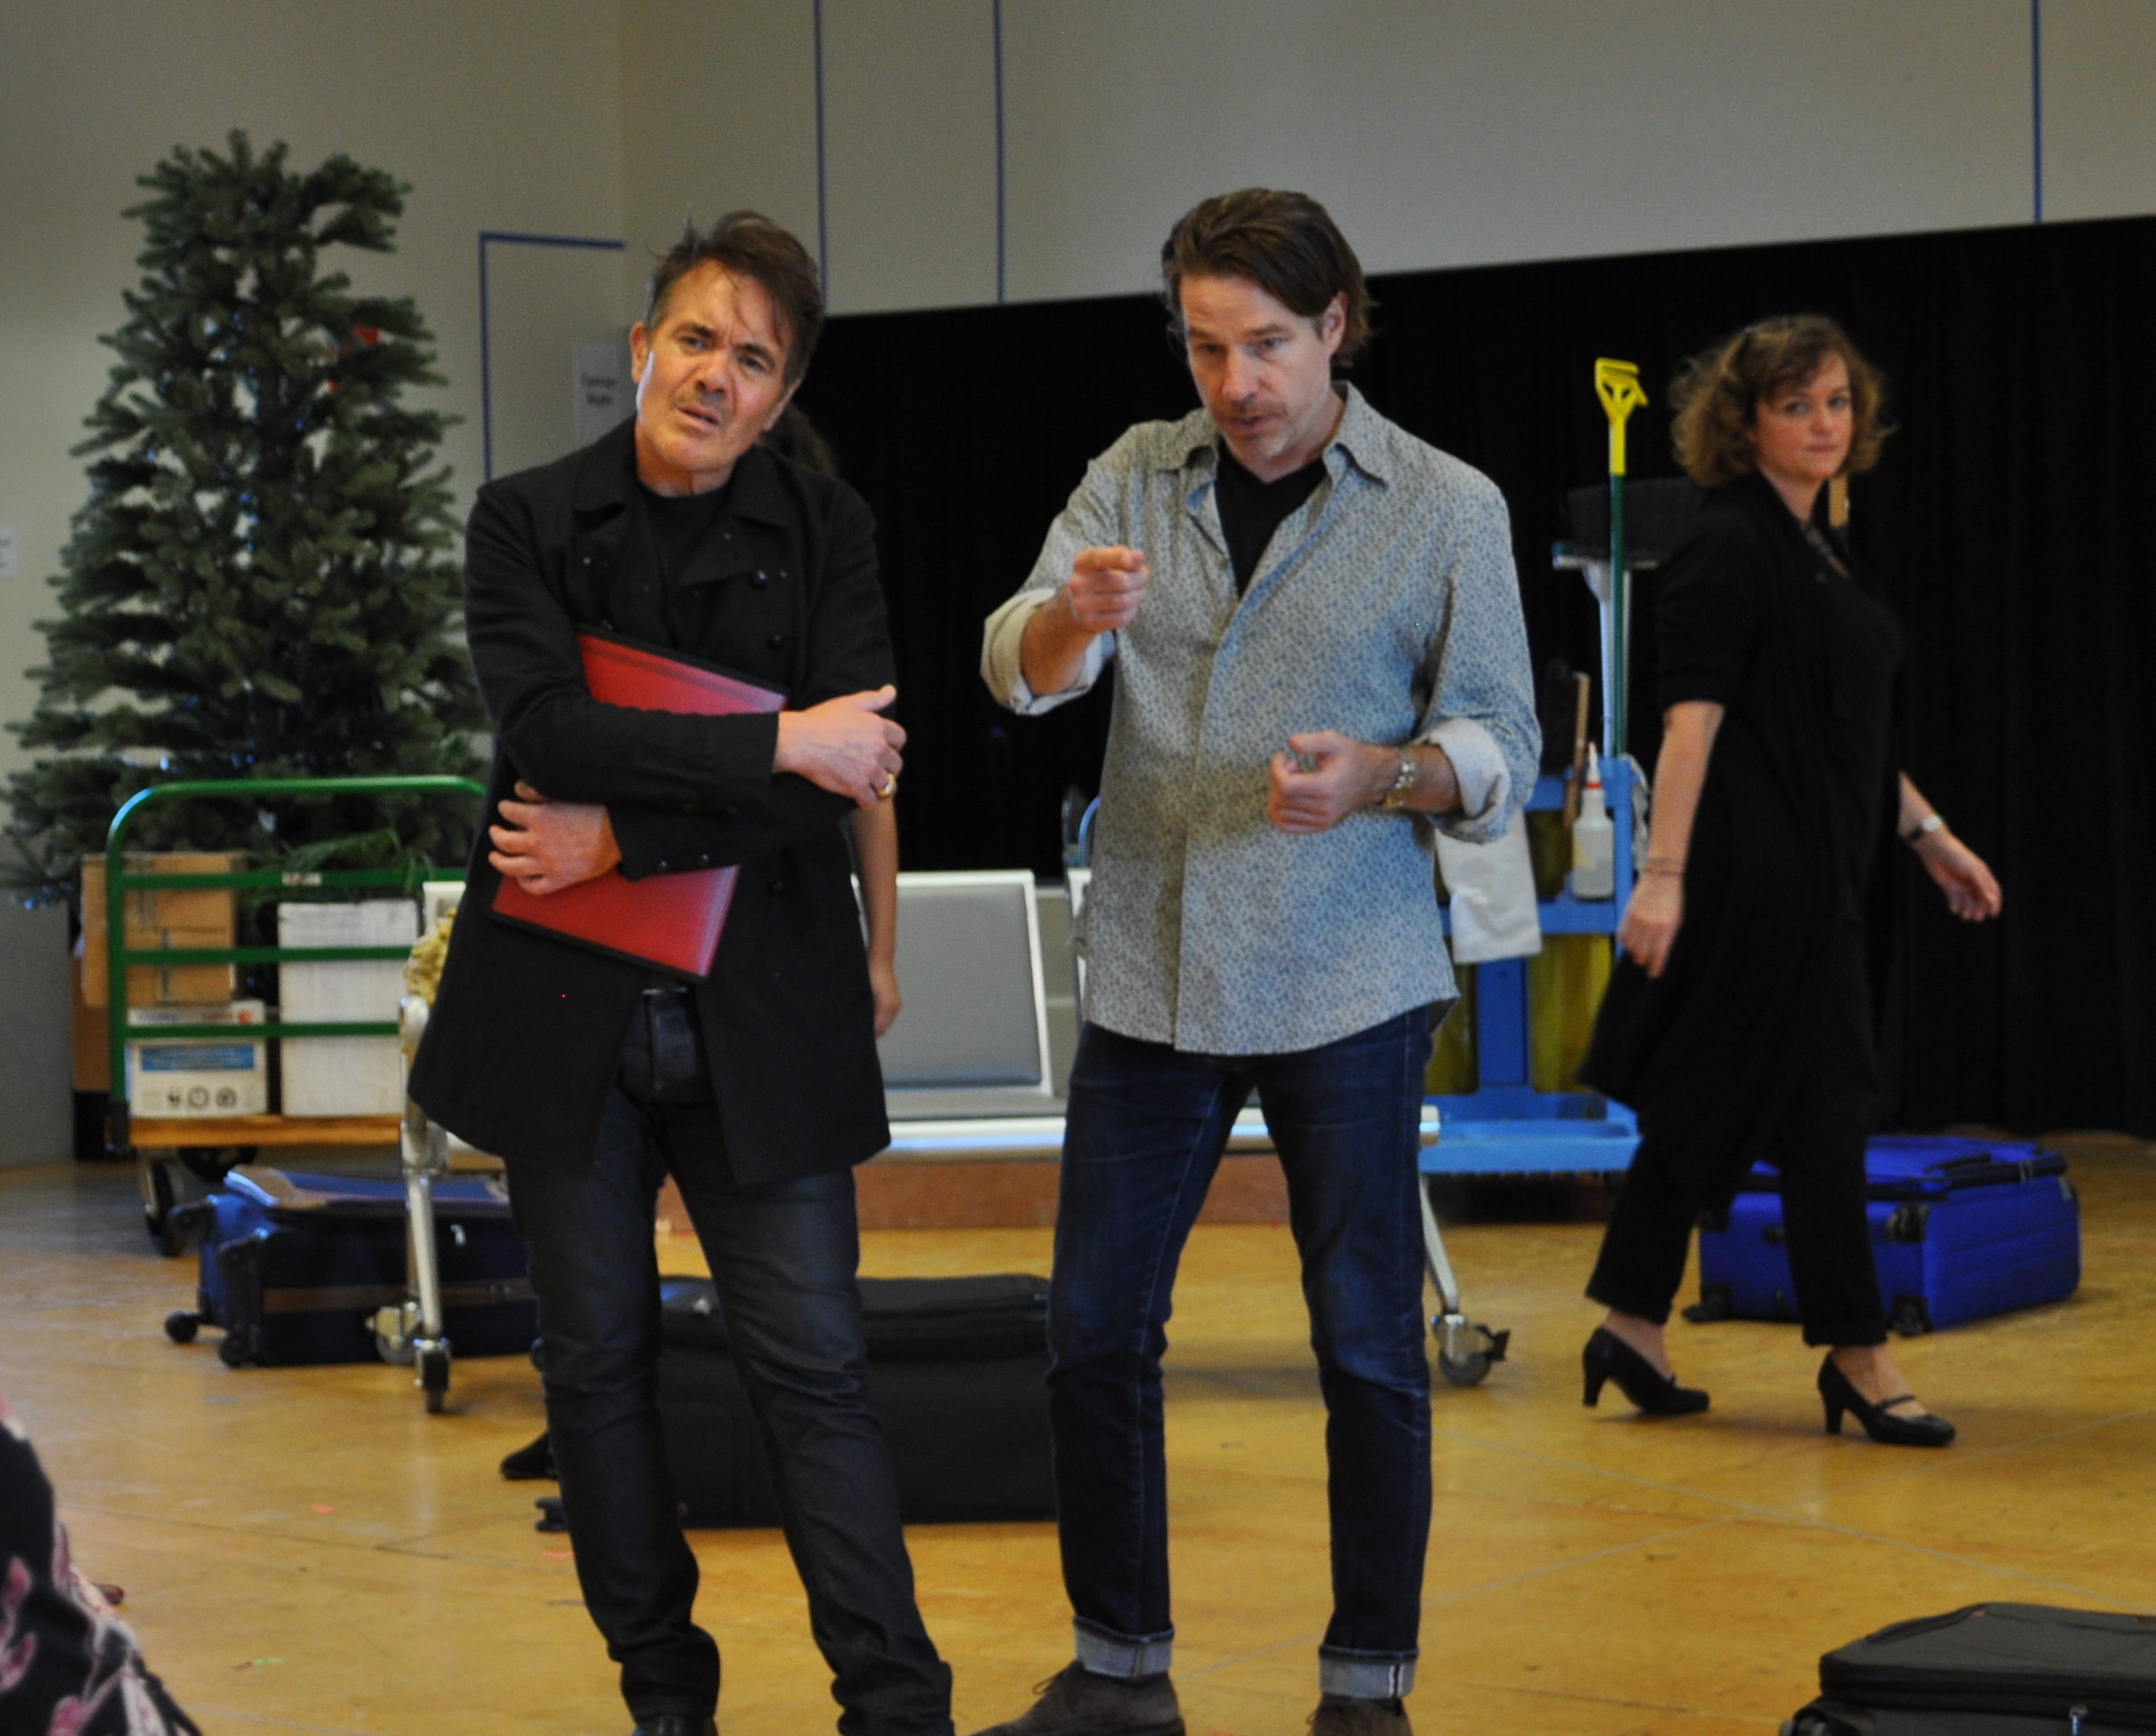 comedic conflict and love in trevor nunns direction of shakespeares twelfth night The extract this project will endeavour to research, understand and present in a way that may makes the context the language of shakespeare less formidable is from act 1, scene 5, lines 509 to 567 of twelfth night.